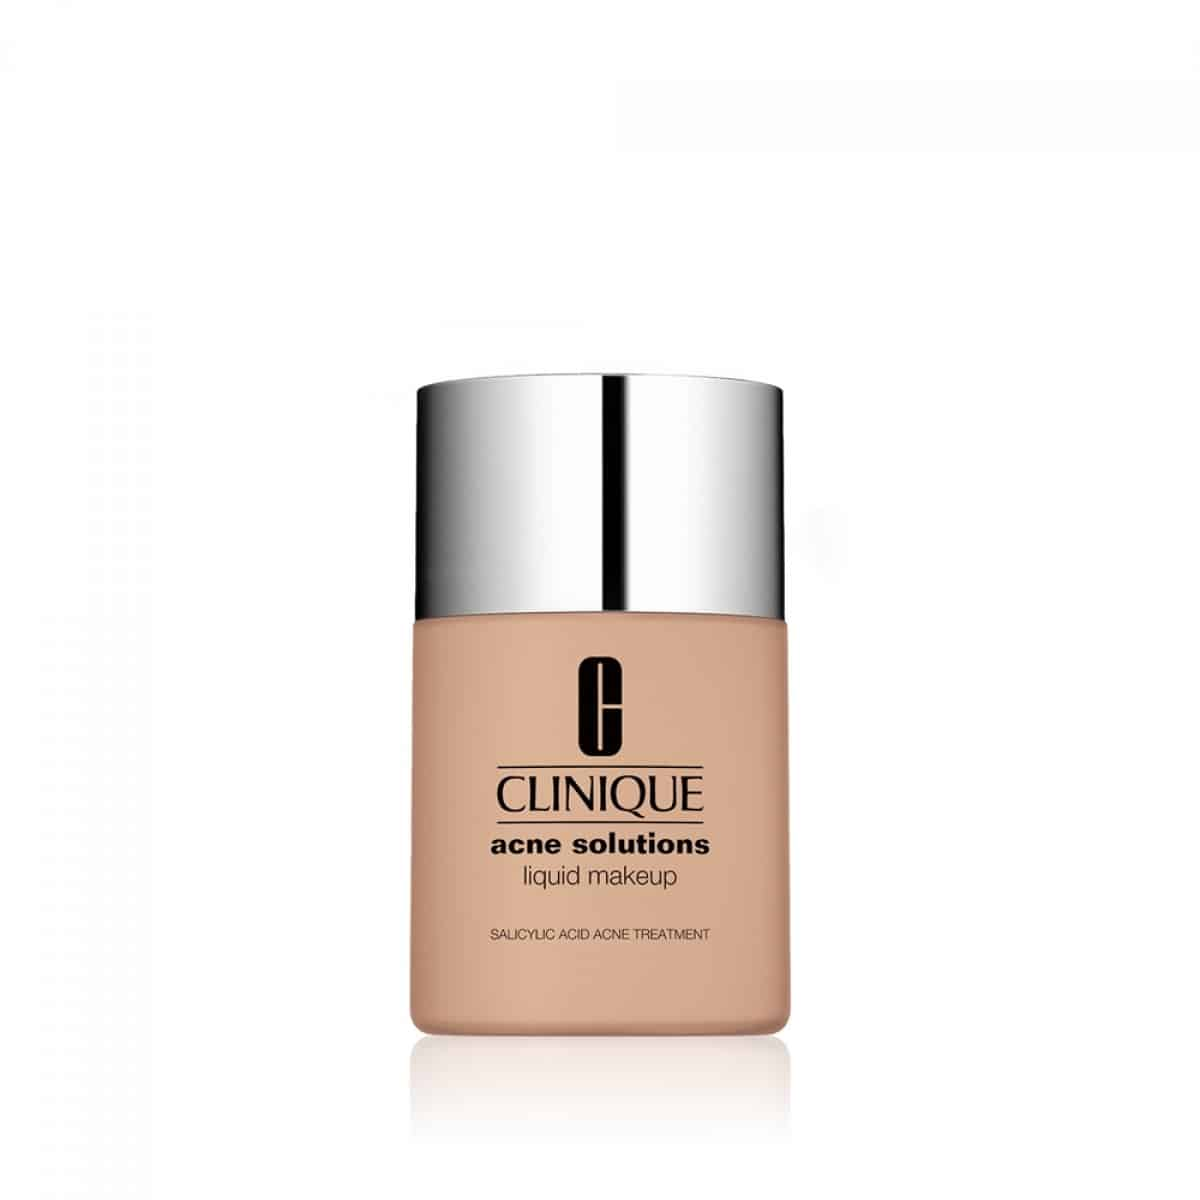 منتج Acne Solutions Liquid Makeup من كلينيك Clinique